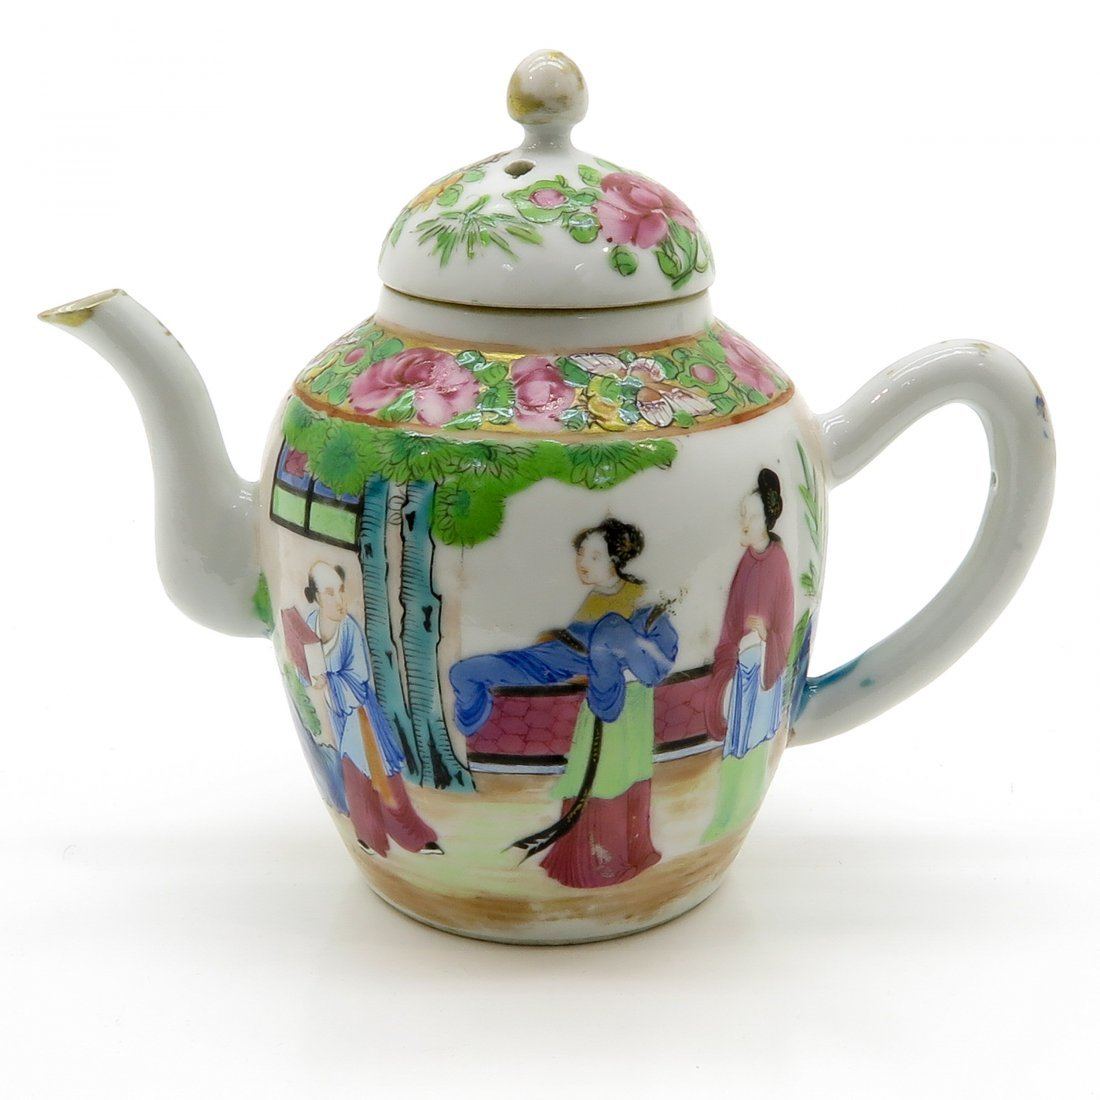 China Porcelain Famille Rose Teapot Circa 1800